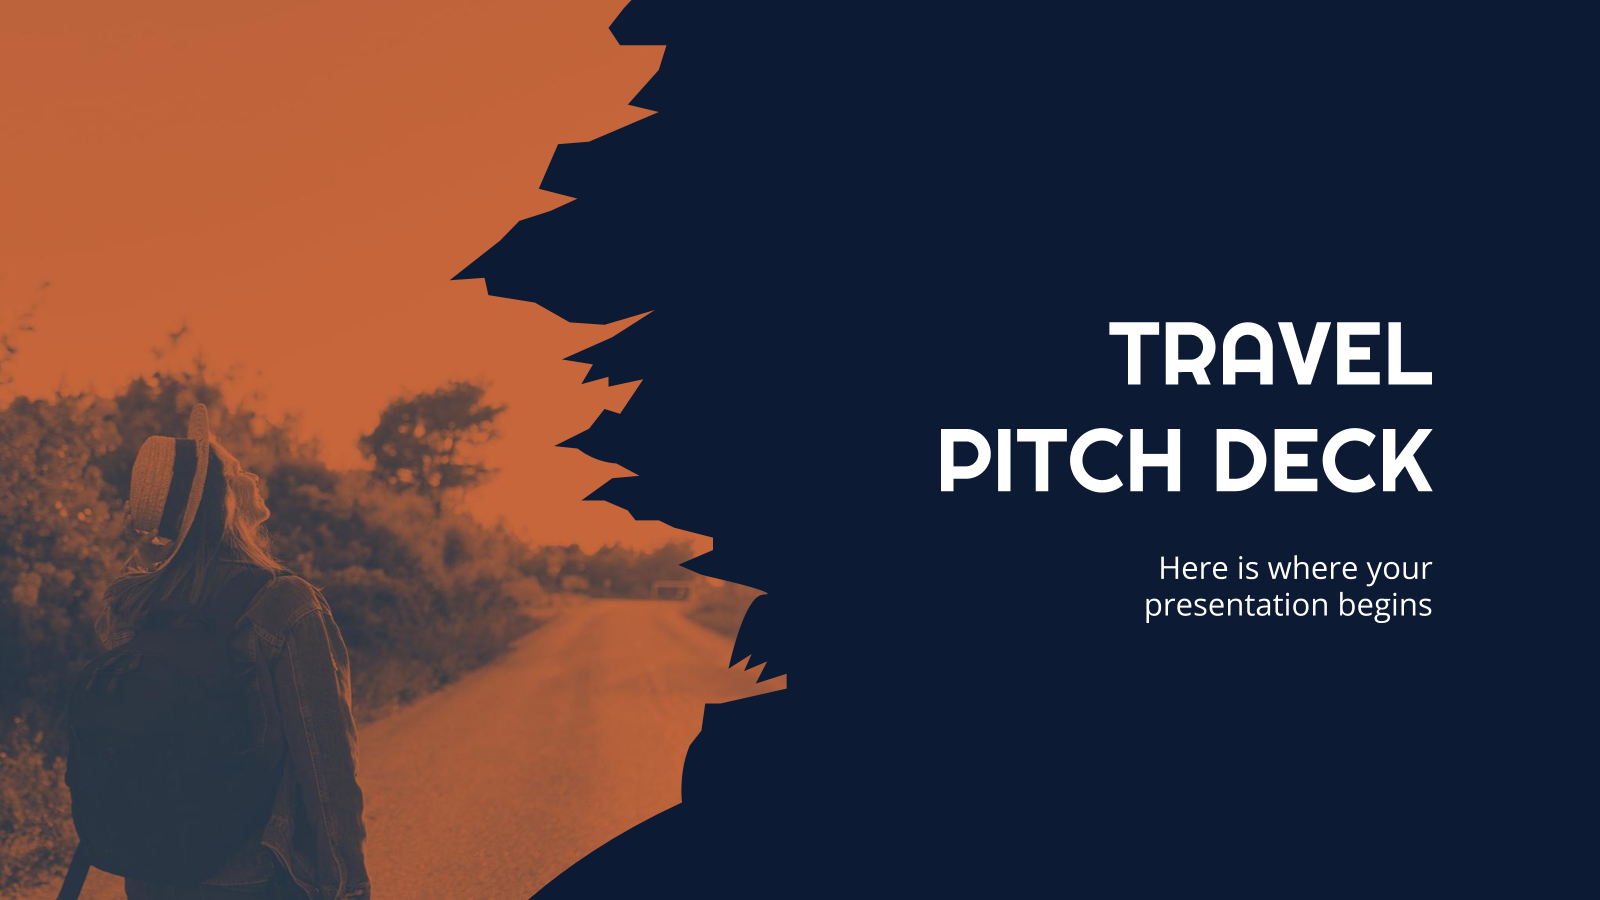 Travel Pitch Deck presentation template